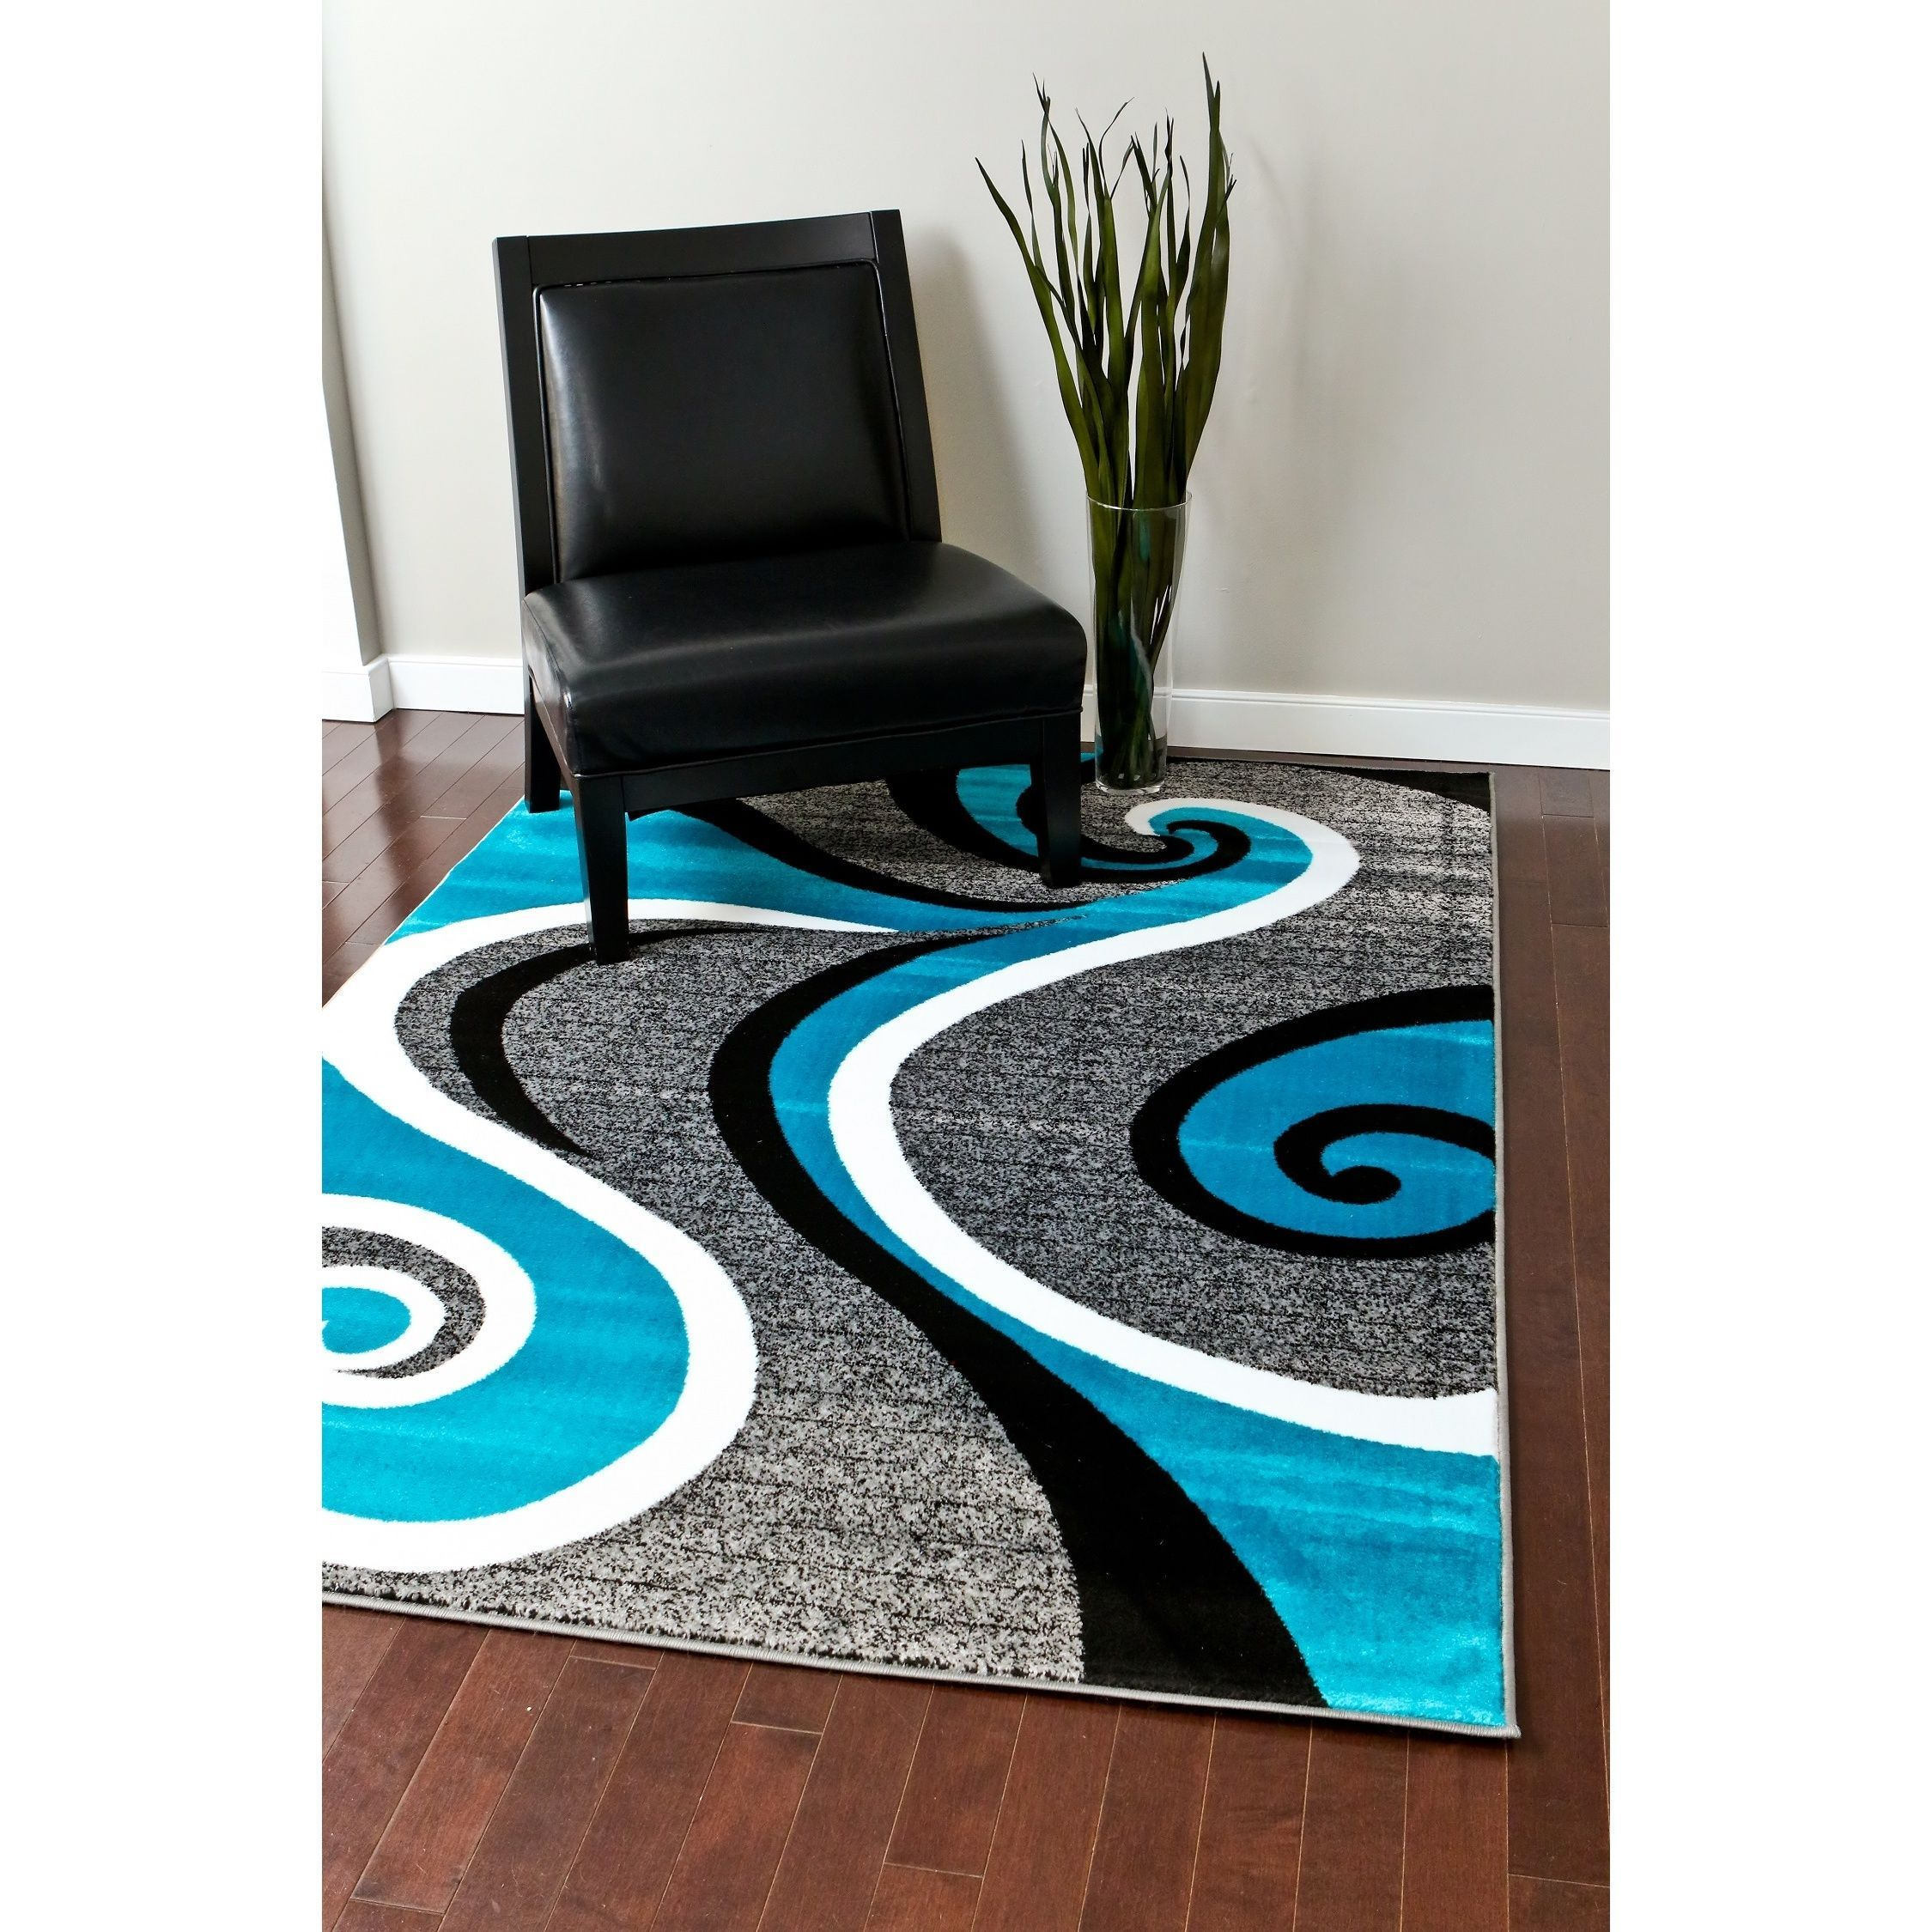 Online Shopping Bedding Furniture Electronics Jewelry Clothing More Rugs On Carpet Turquoise Rug Modern Rugs